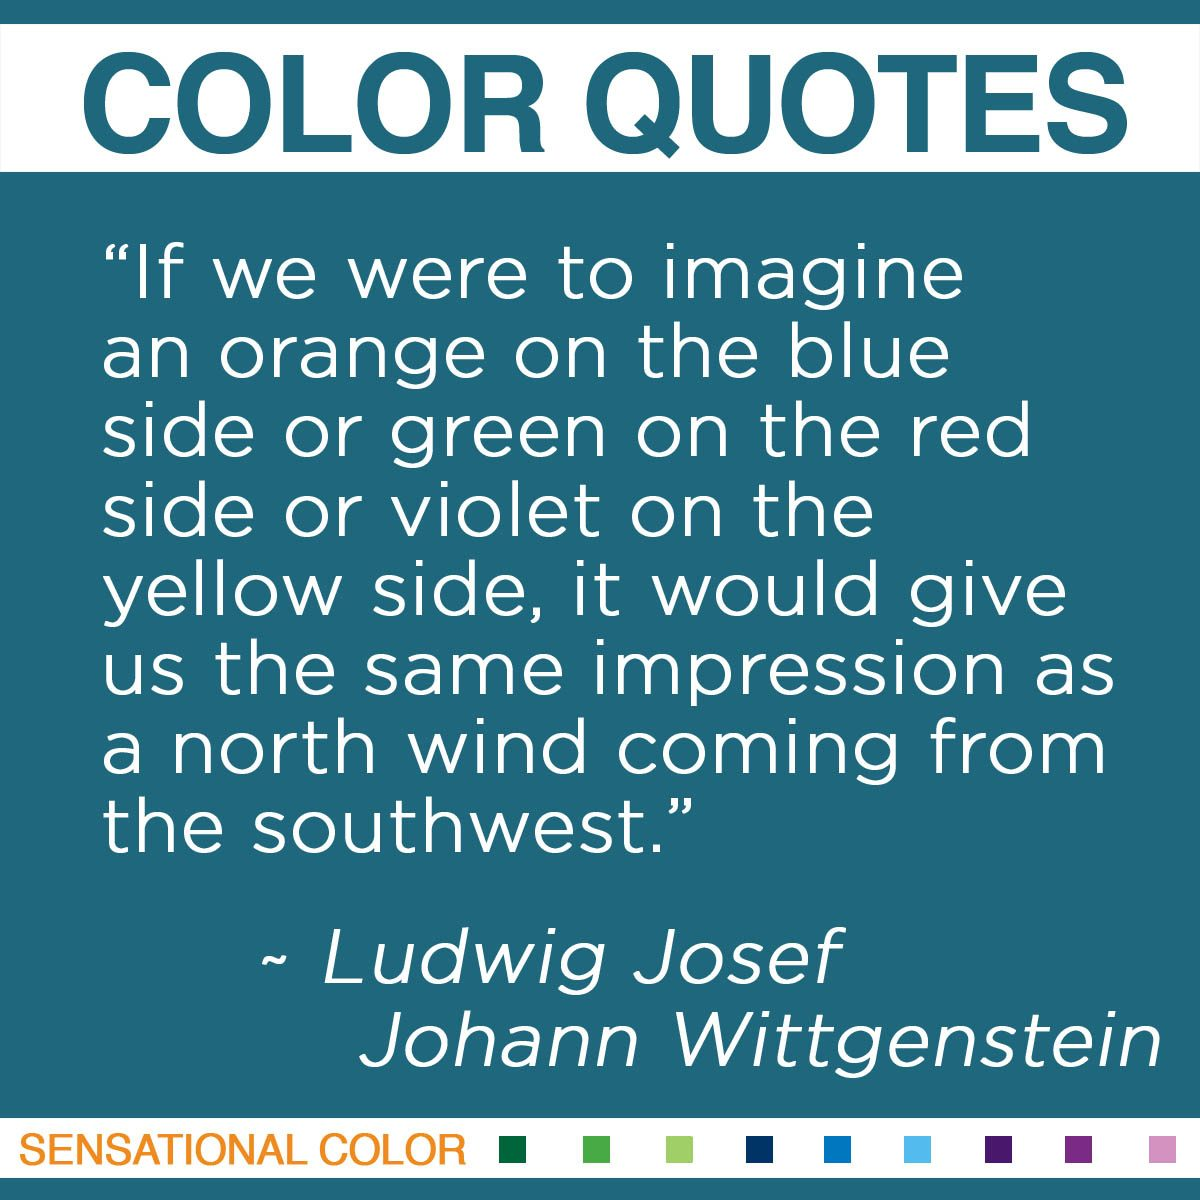 """If we were to imagine an orange on the blue side or green on the red side or violet on the yellow side, it would give us the same impression as a north wind coming from the southwest."" - Ludwig Josef Johann Wittgenstein"